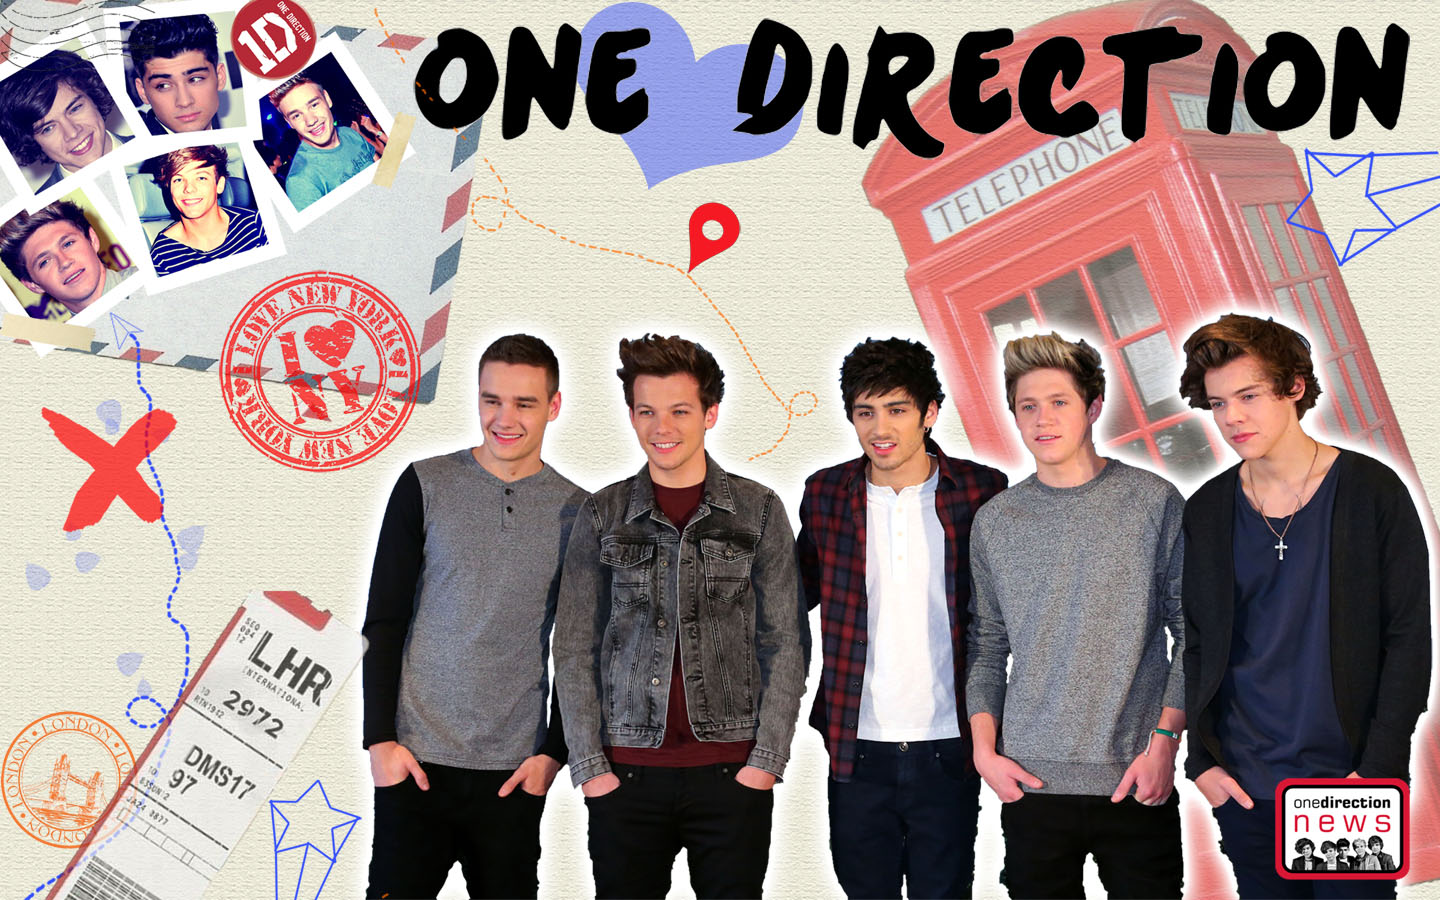 ... 1920 x 1200. Cartoon 1D desktop wallpaper